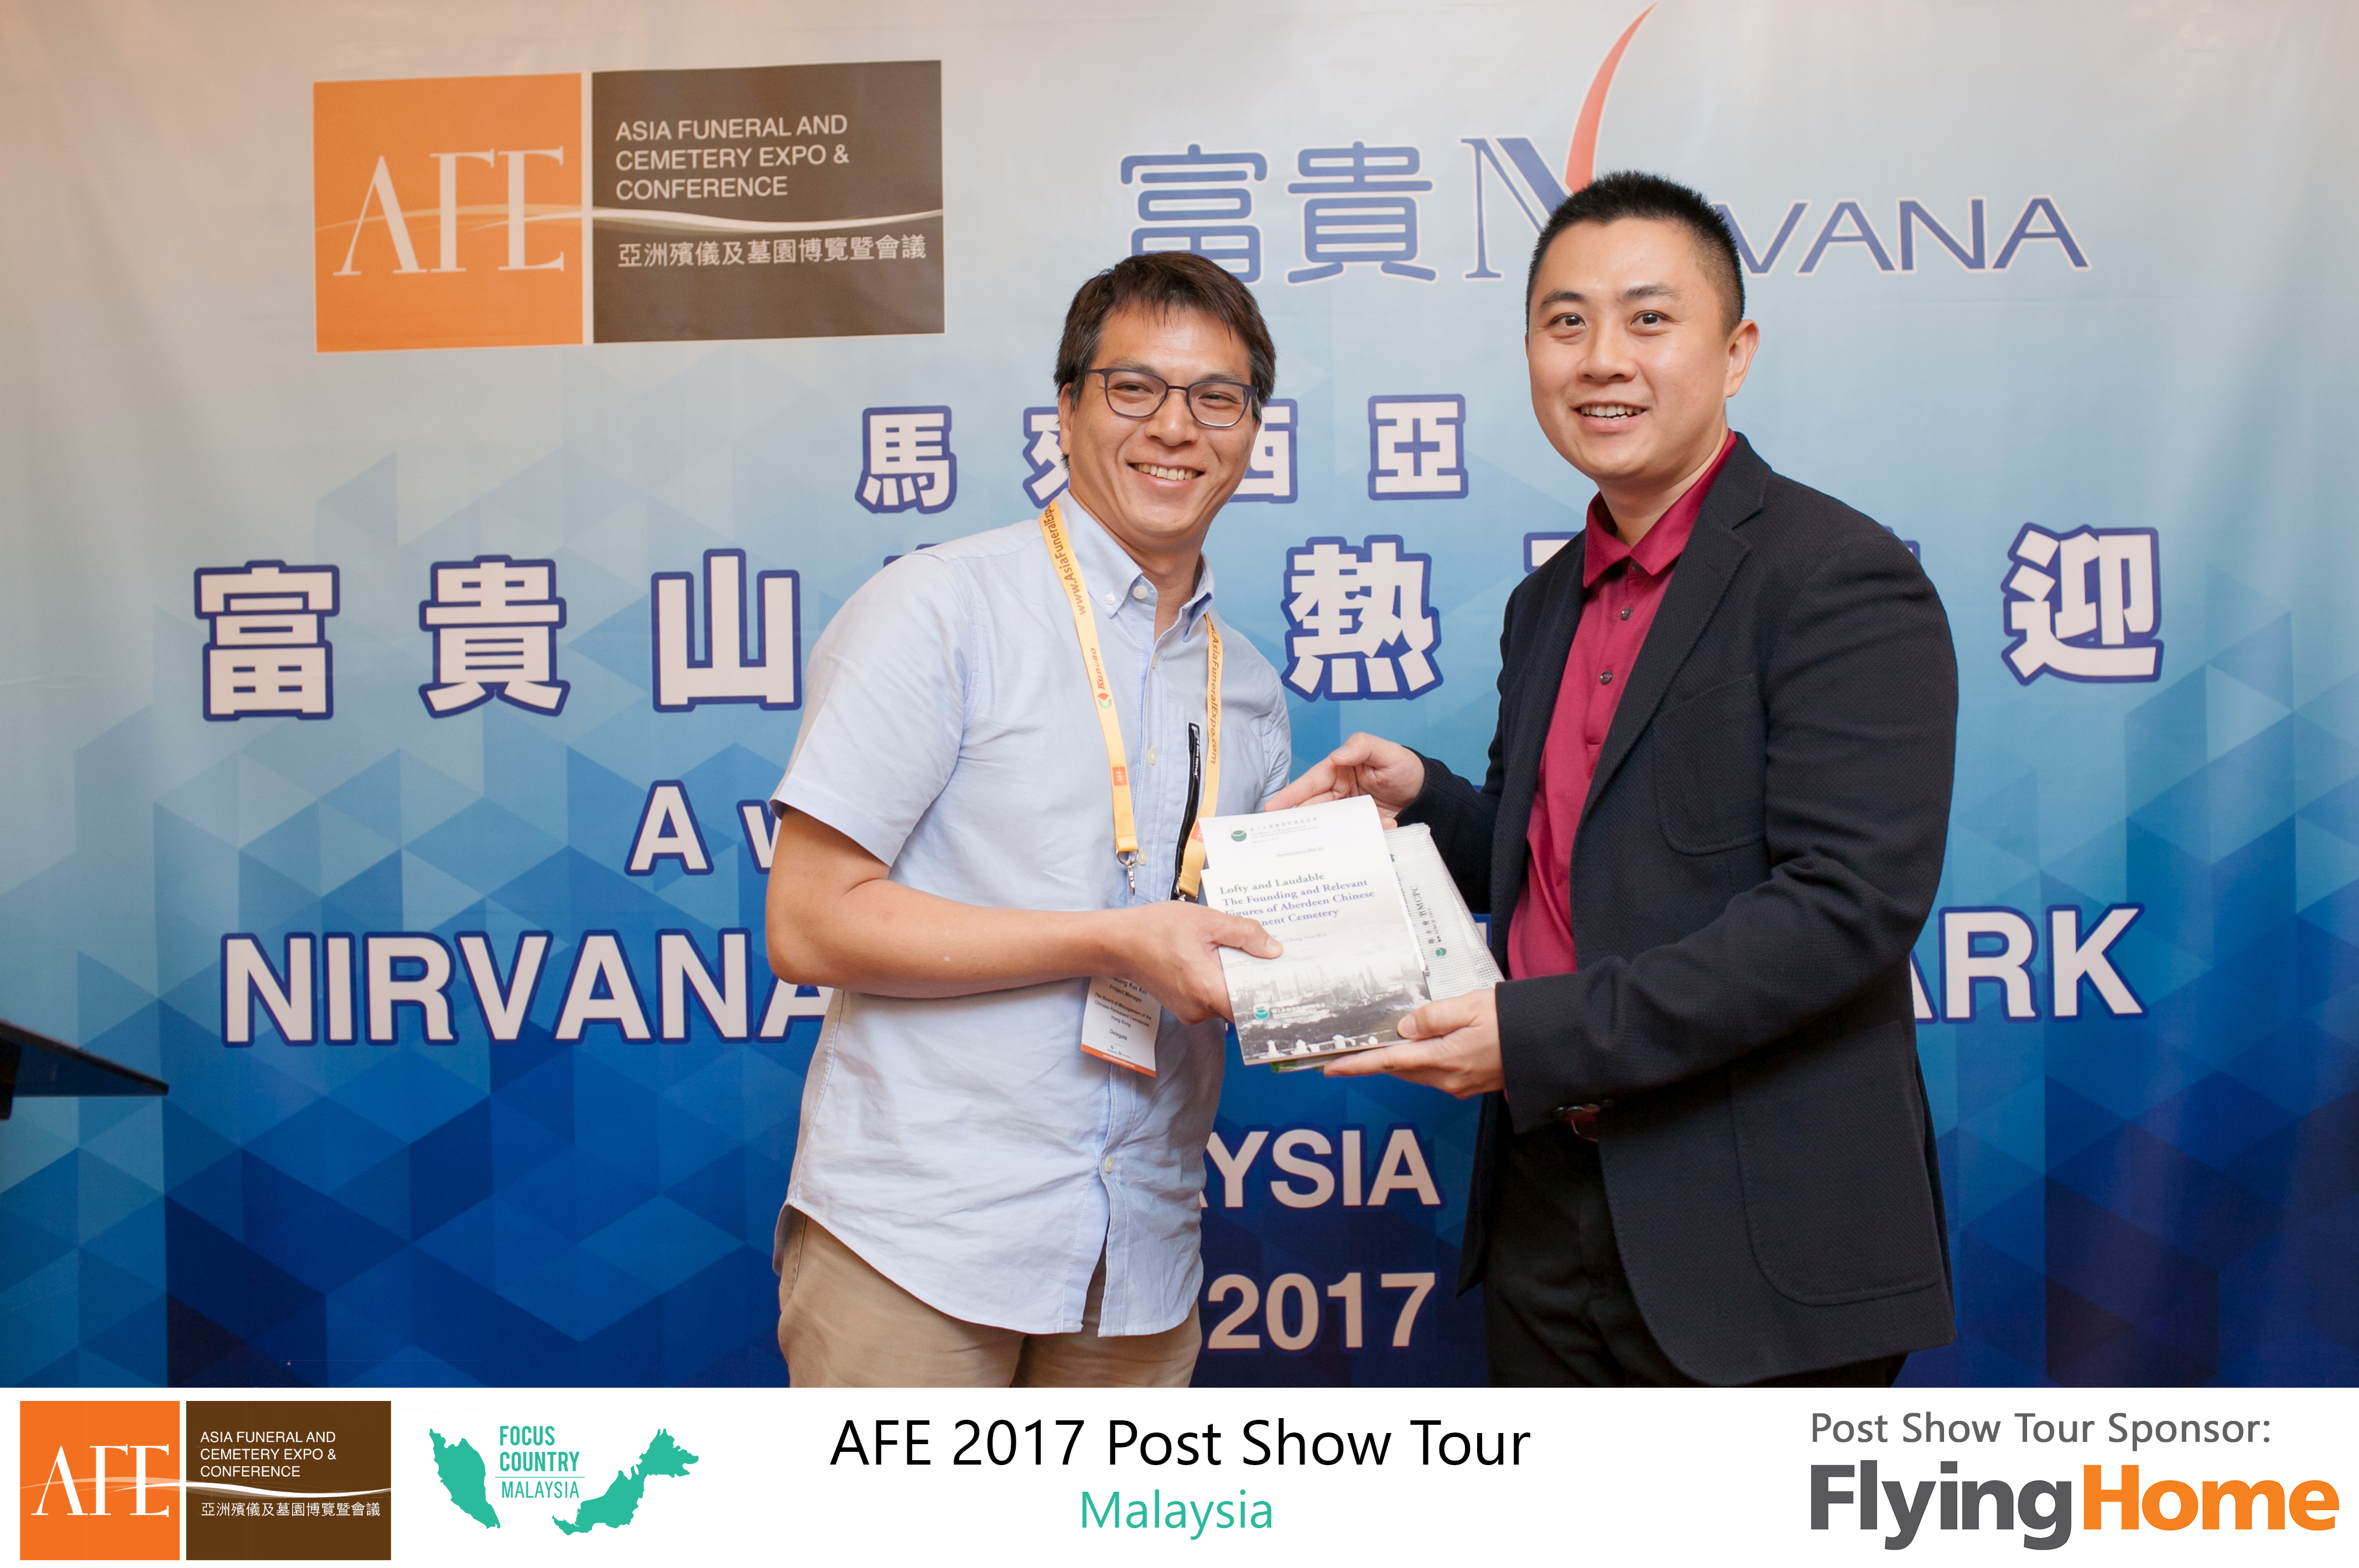 AFE Post Show Tour 2017 Day 2 - 35